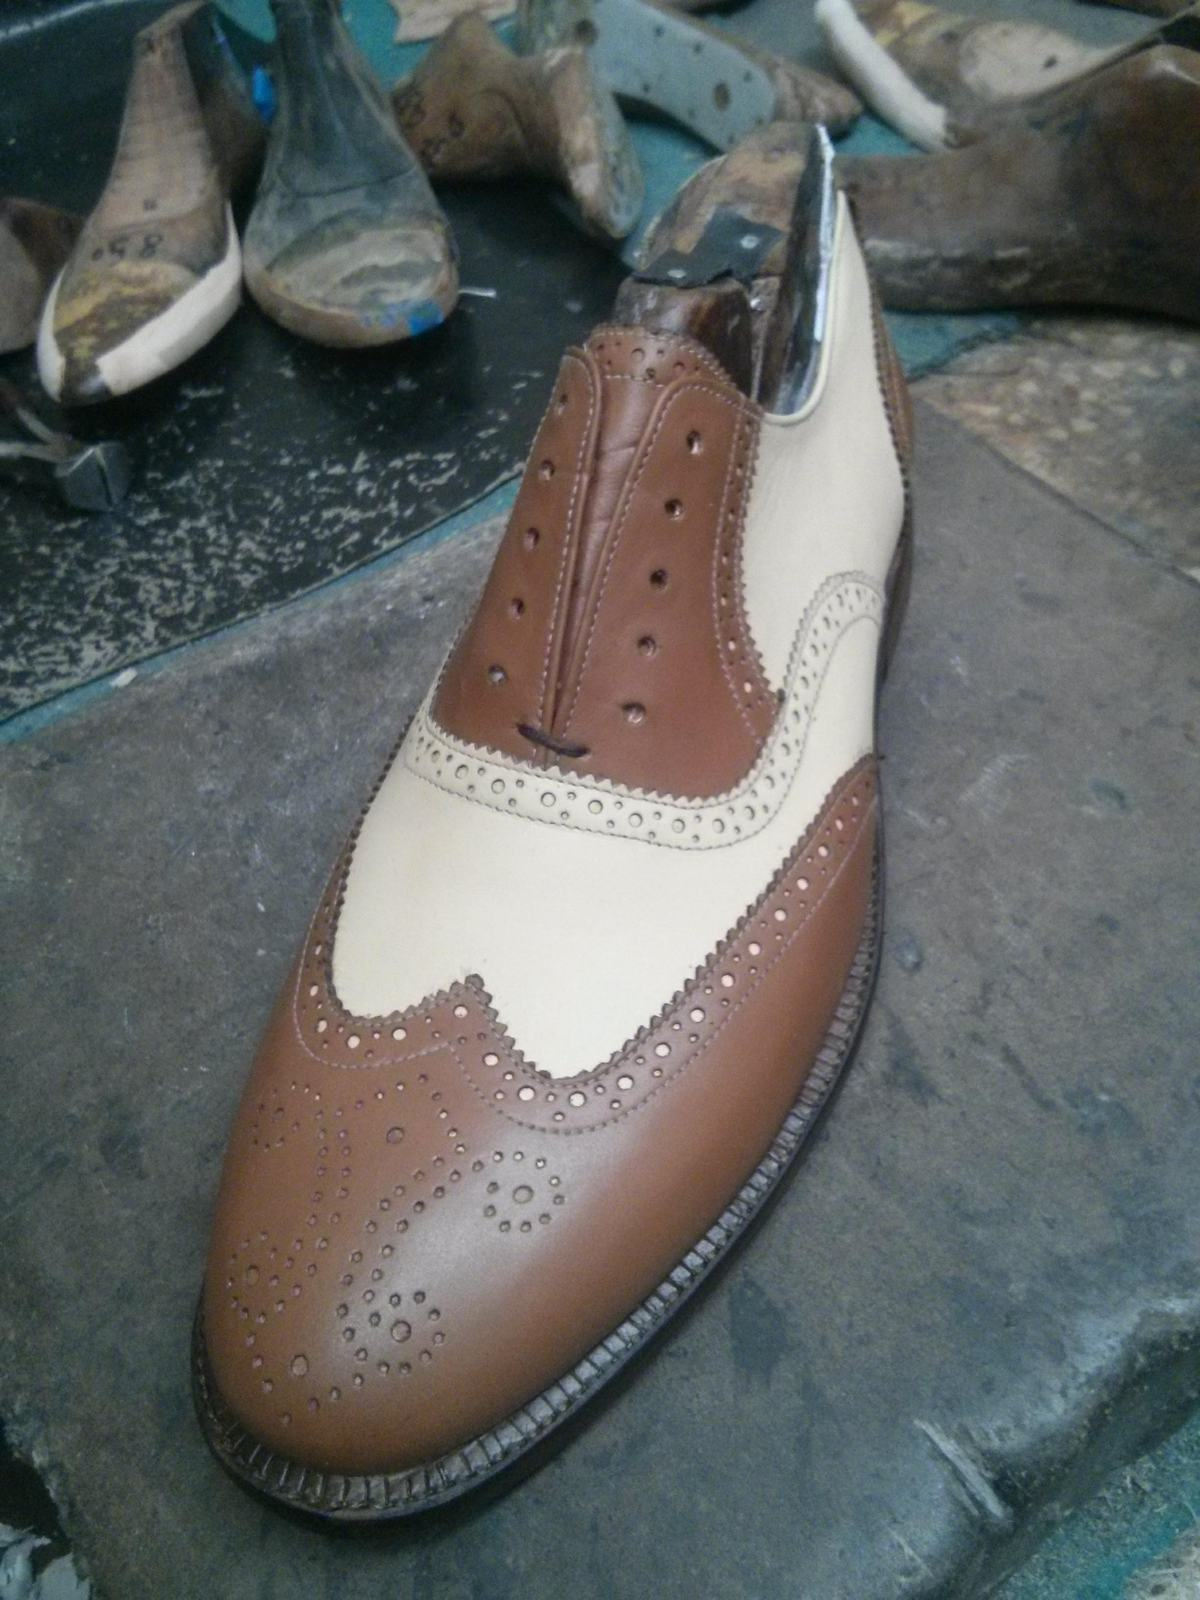 Primary image for Two Tone Leather shoes for Men Custom Made Brogue shoes for Men Top Quality Shoe